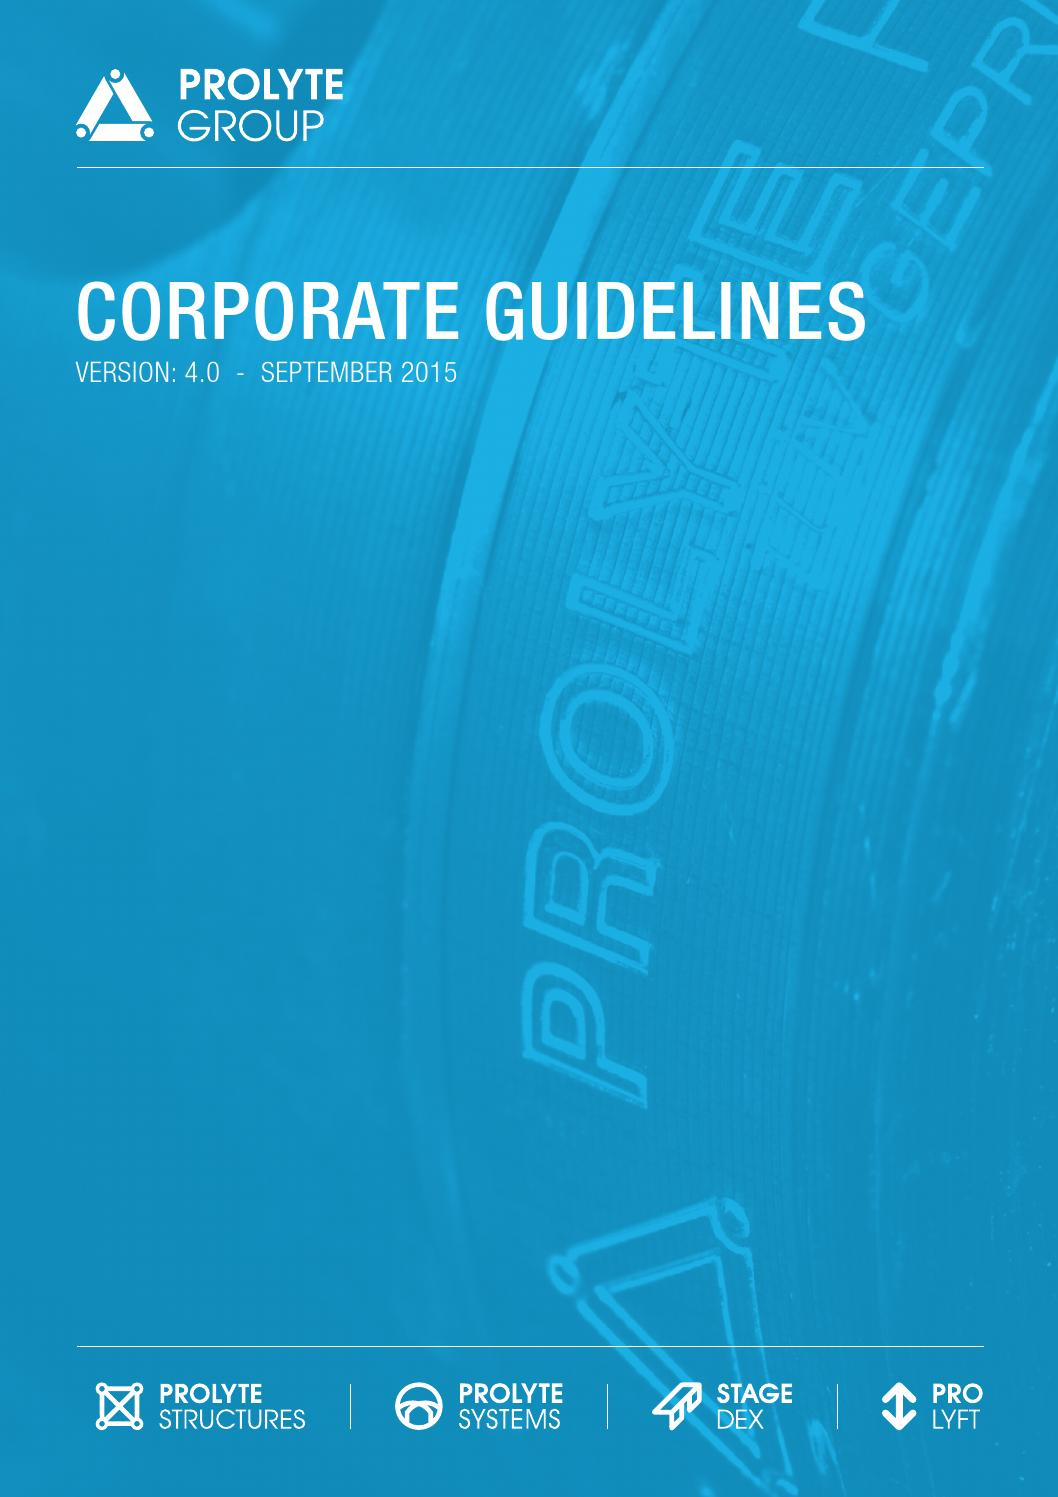 Prolyte Corporate Guidelines by Prolyte Group - issuu